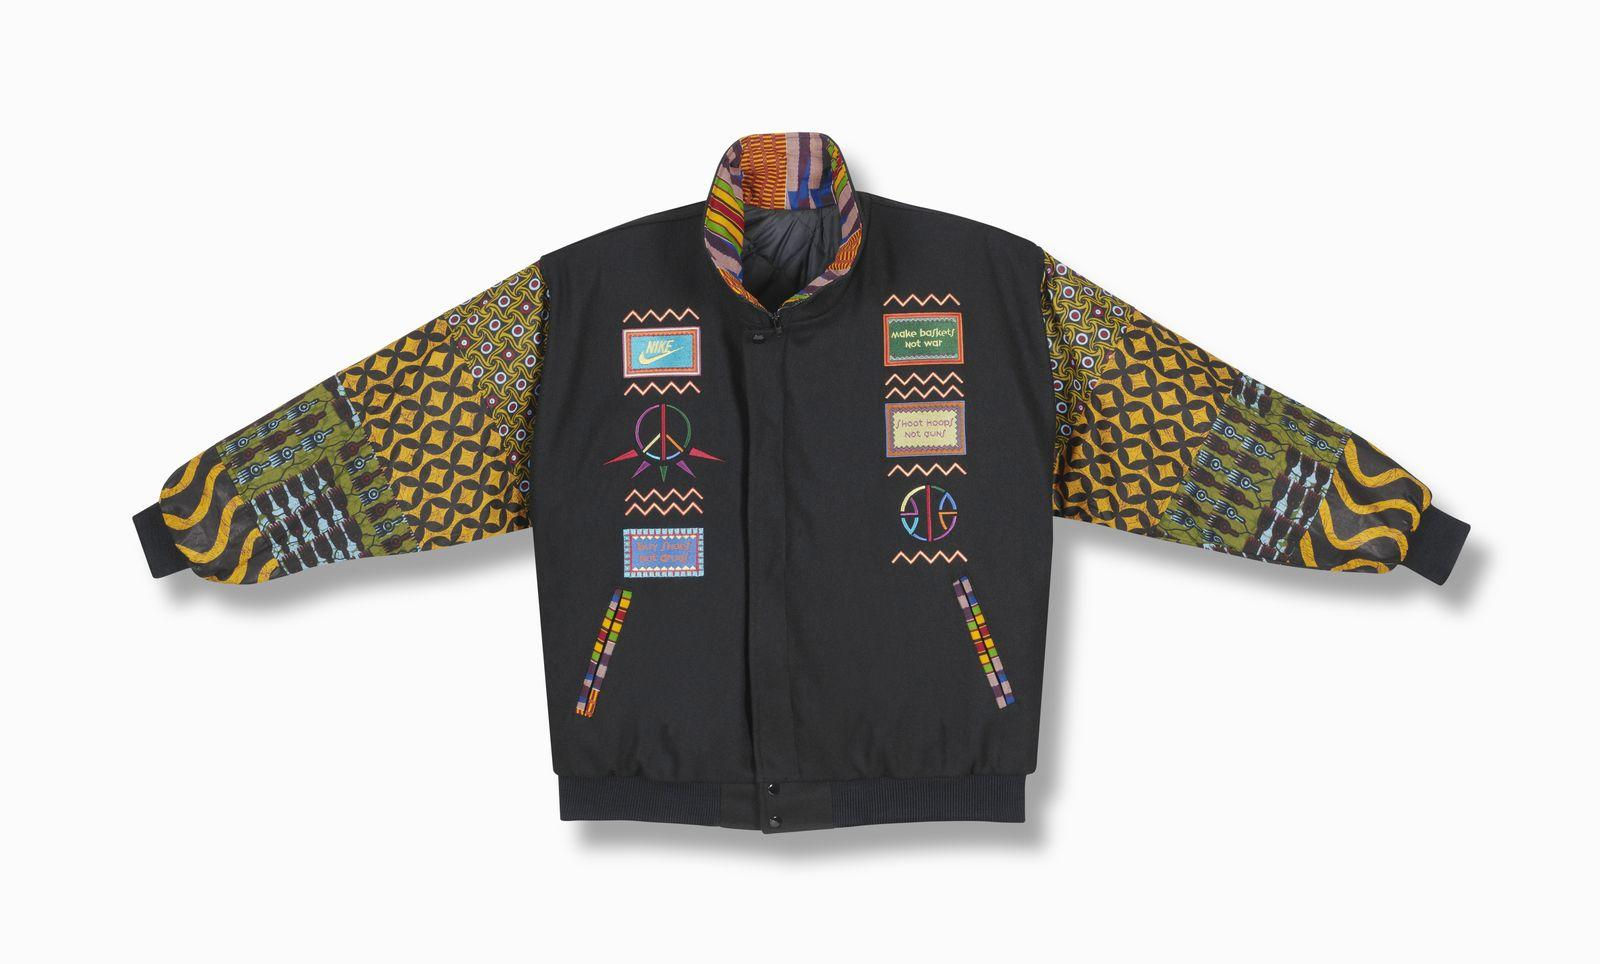 Spike Lee's Urban Jungle Gym Jacket